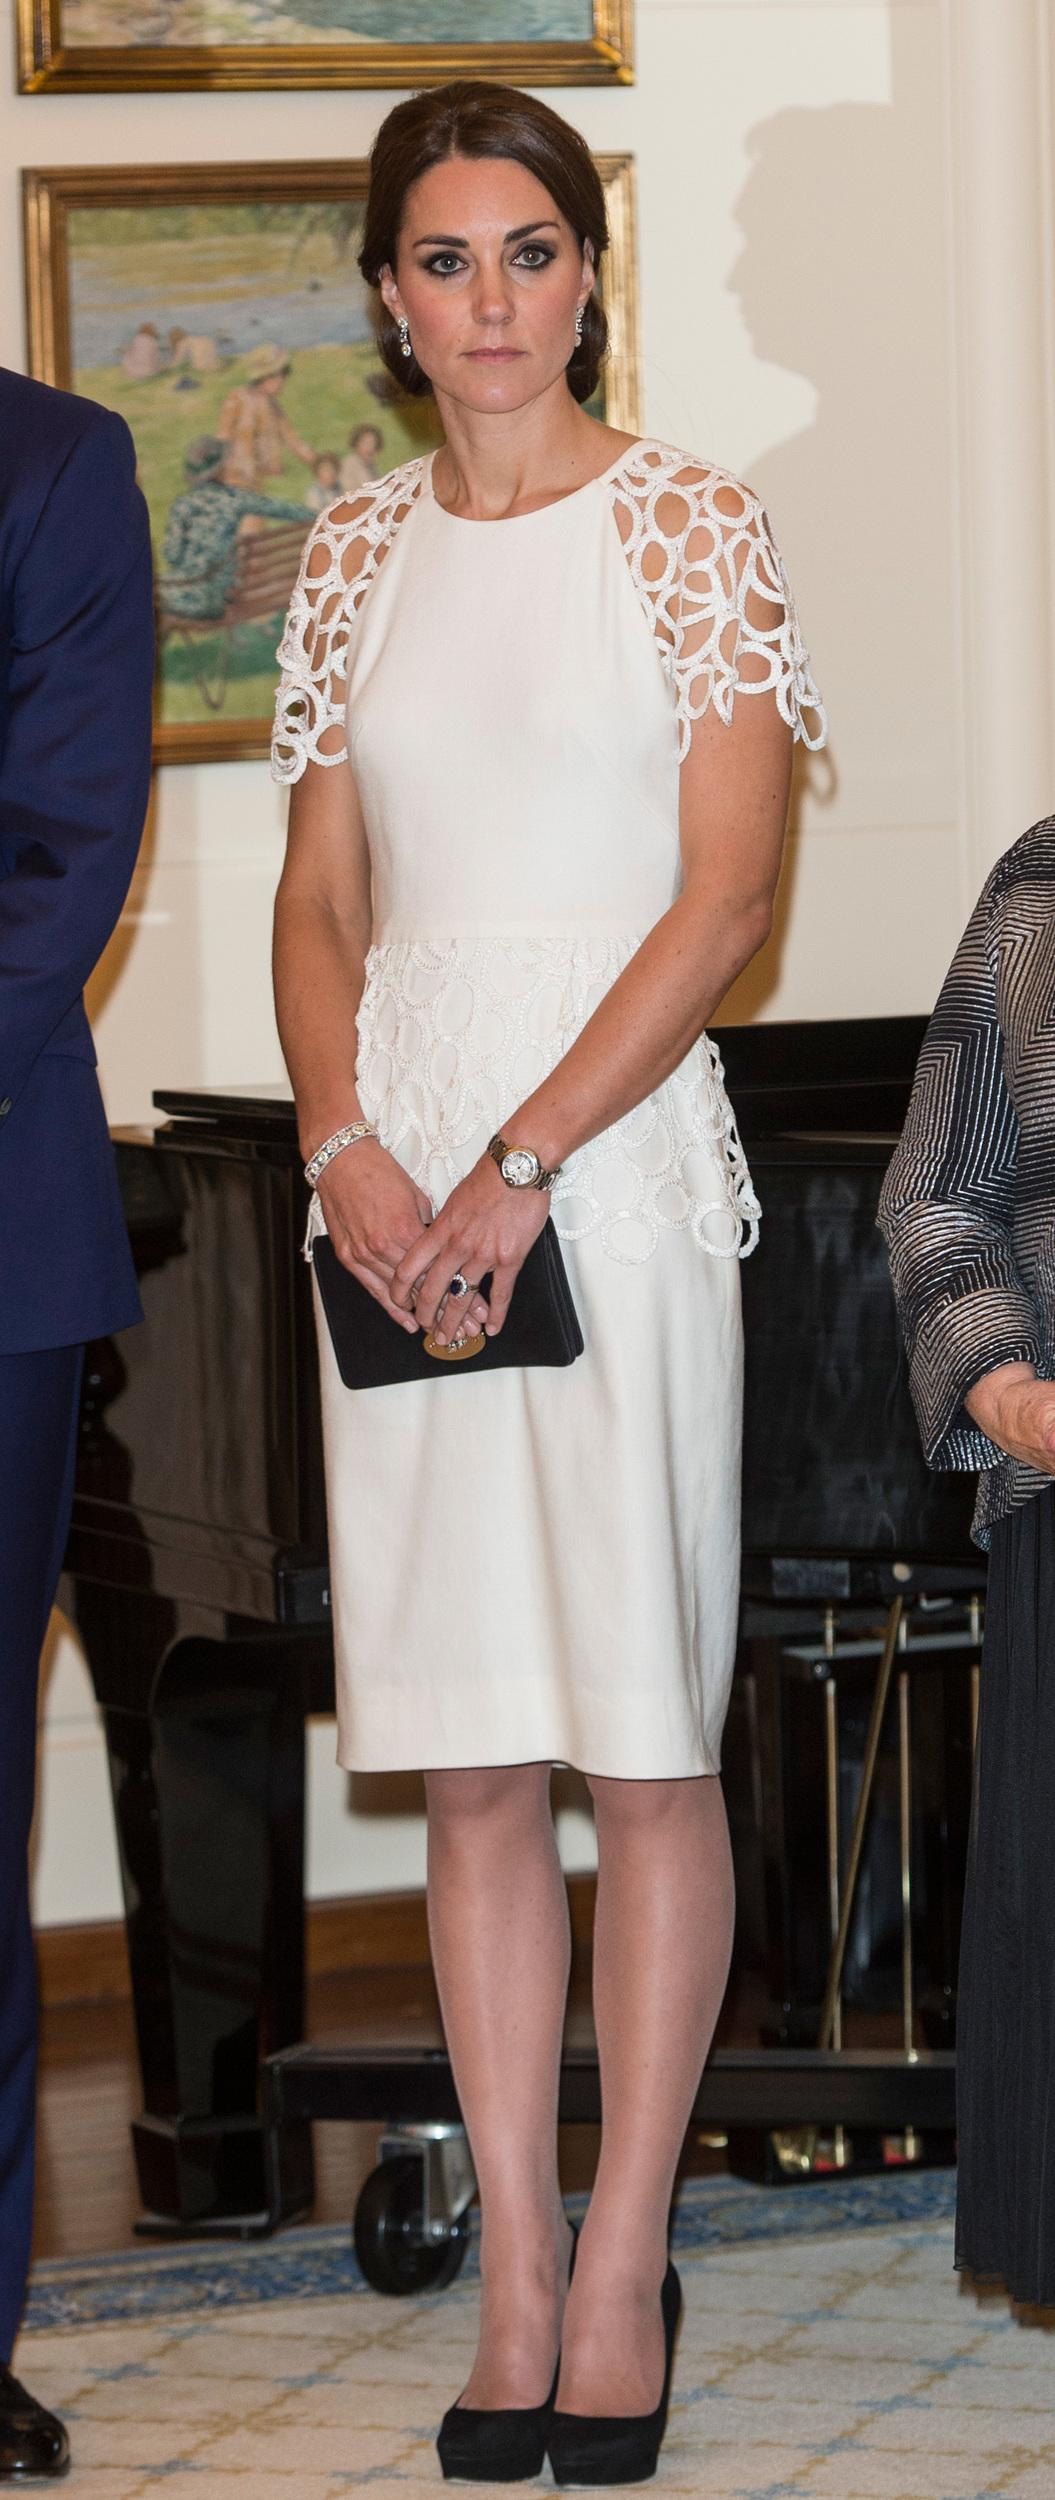 Catherine, Duchess of Cambridge attends a reception hosted by the Governor General Peter Cosgrove at Government House on April 24, 2014 in Canberra, Australia.